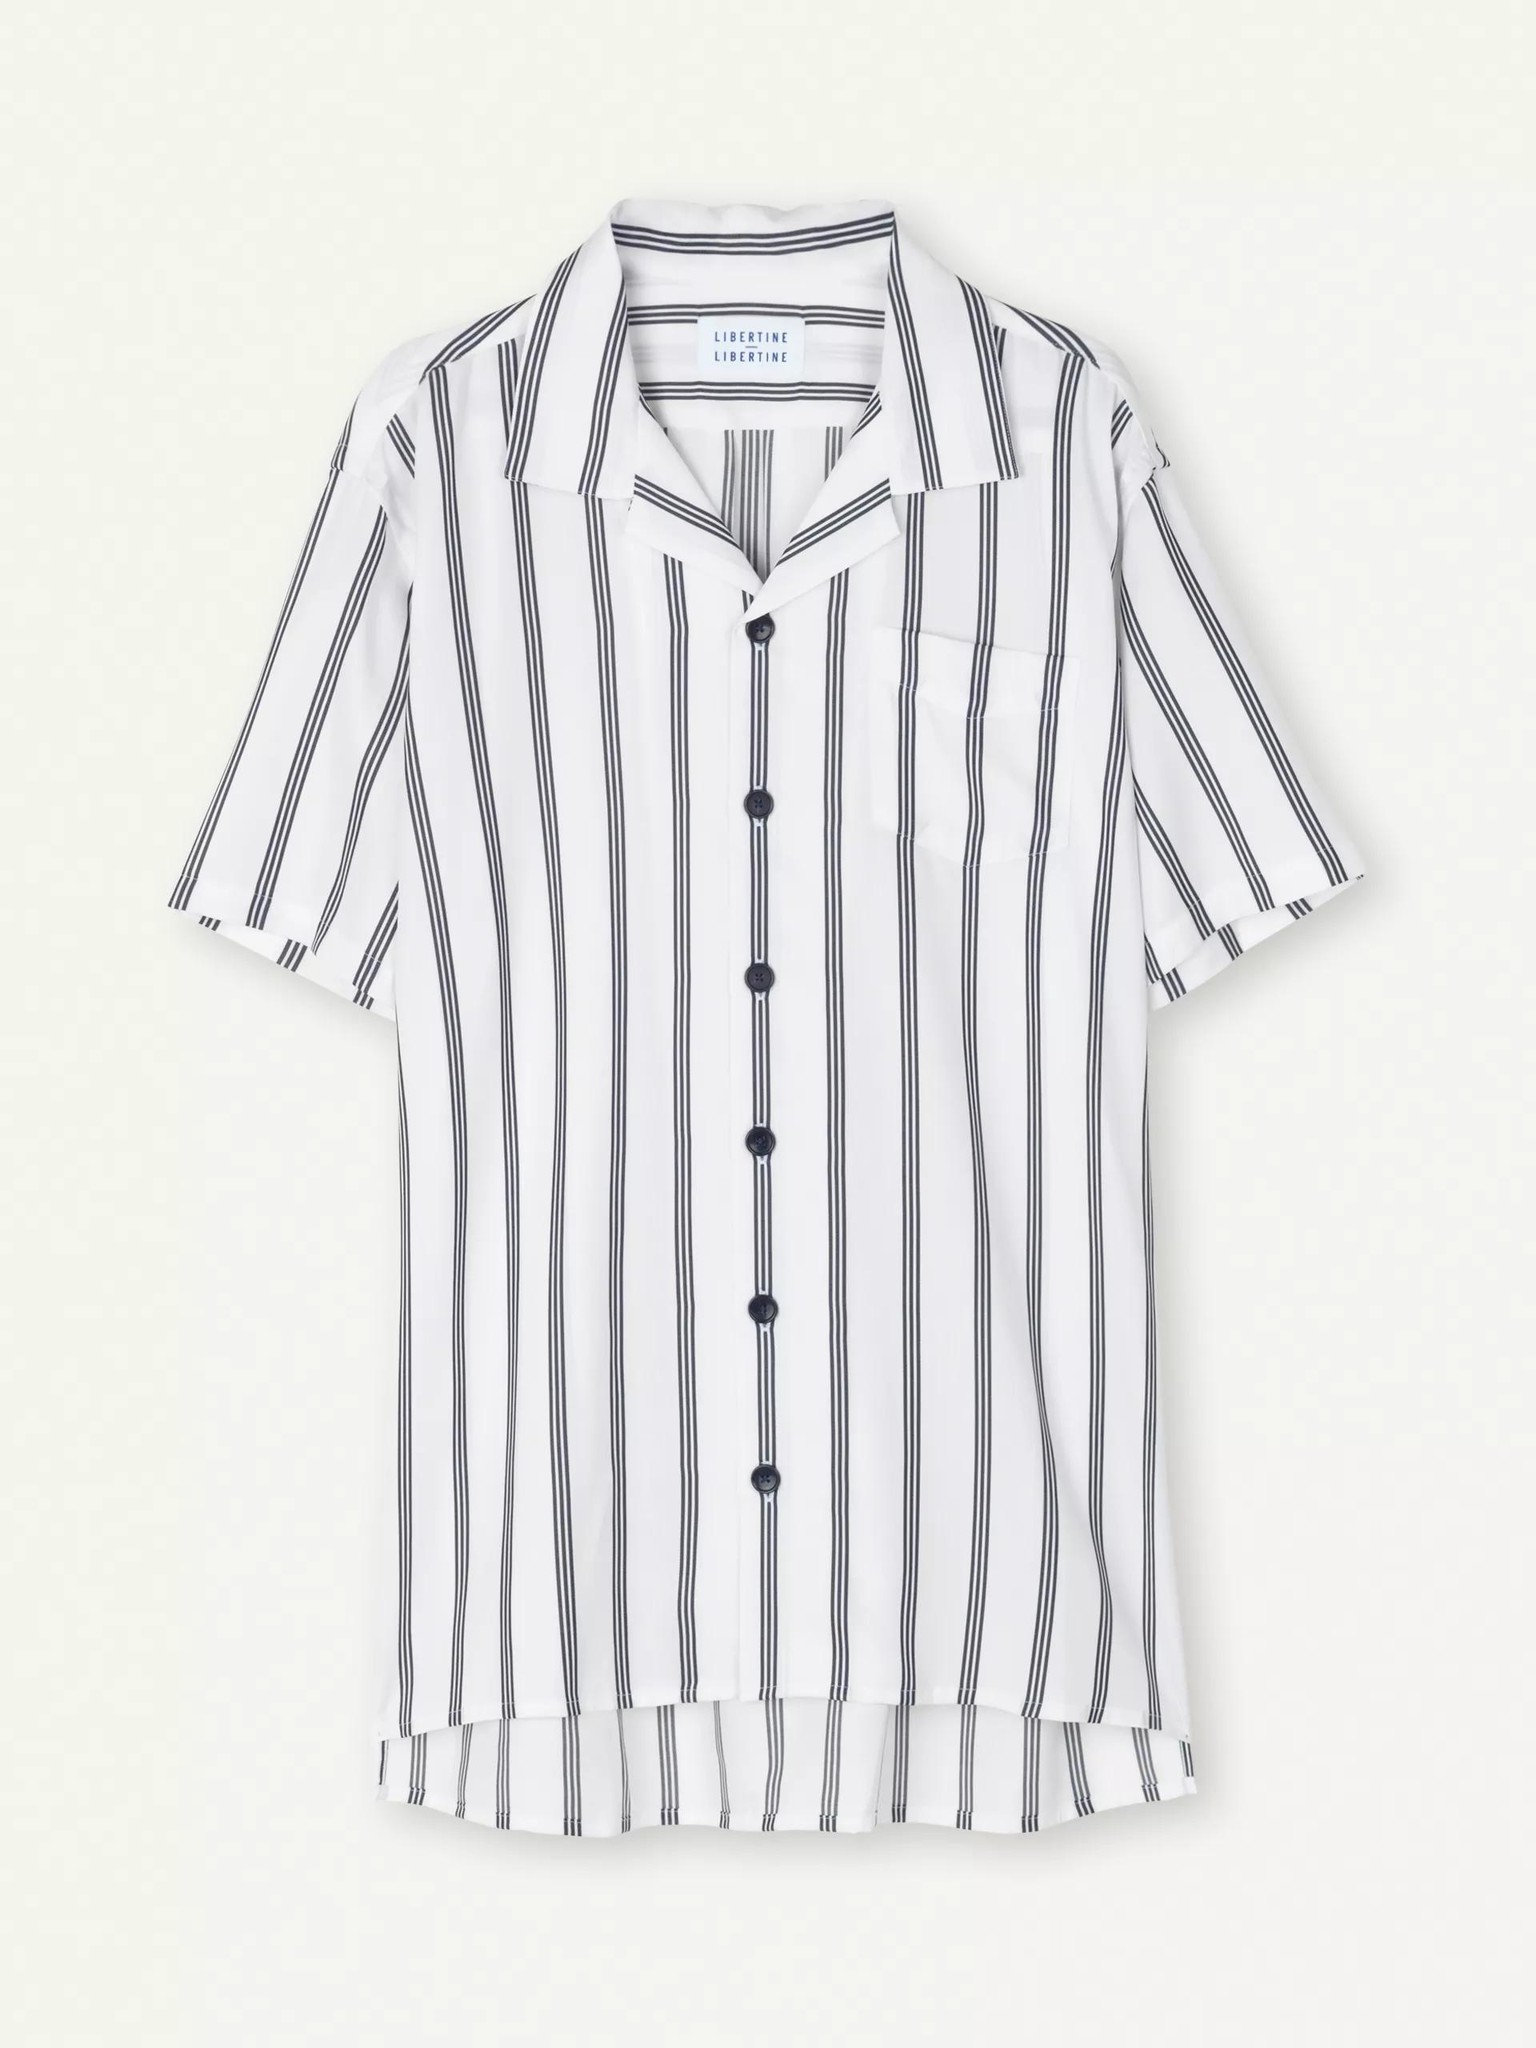 Cave Short Sleeve Shirt White Navy Stripe-1